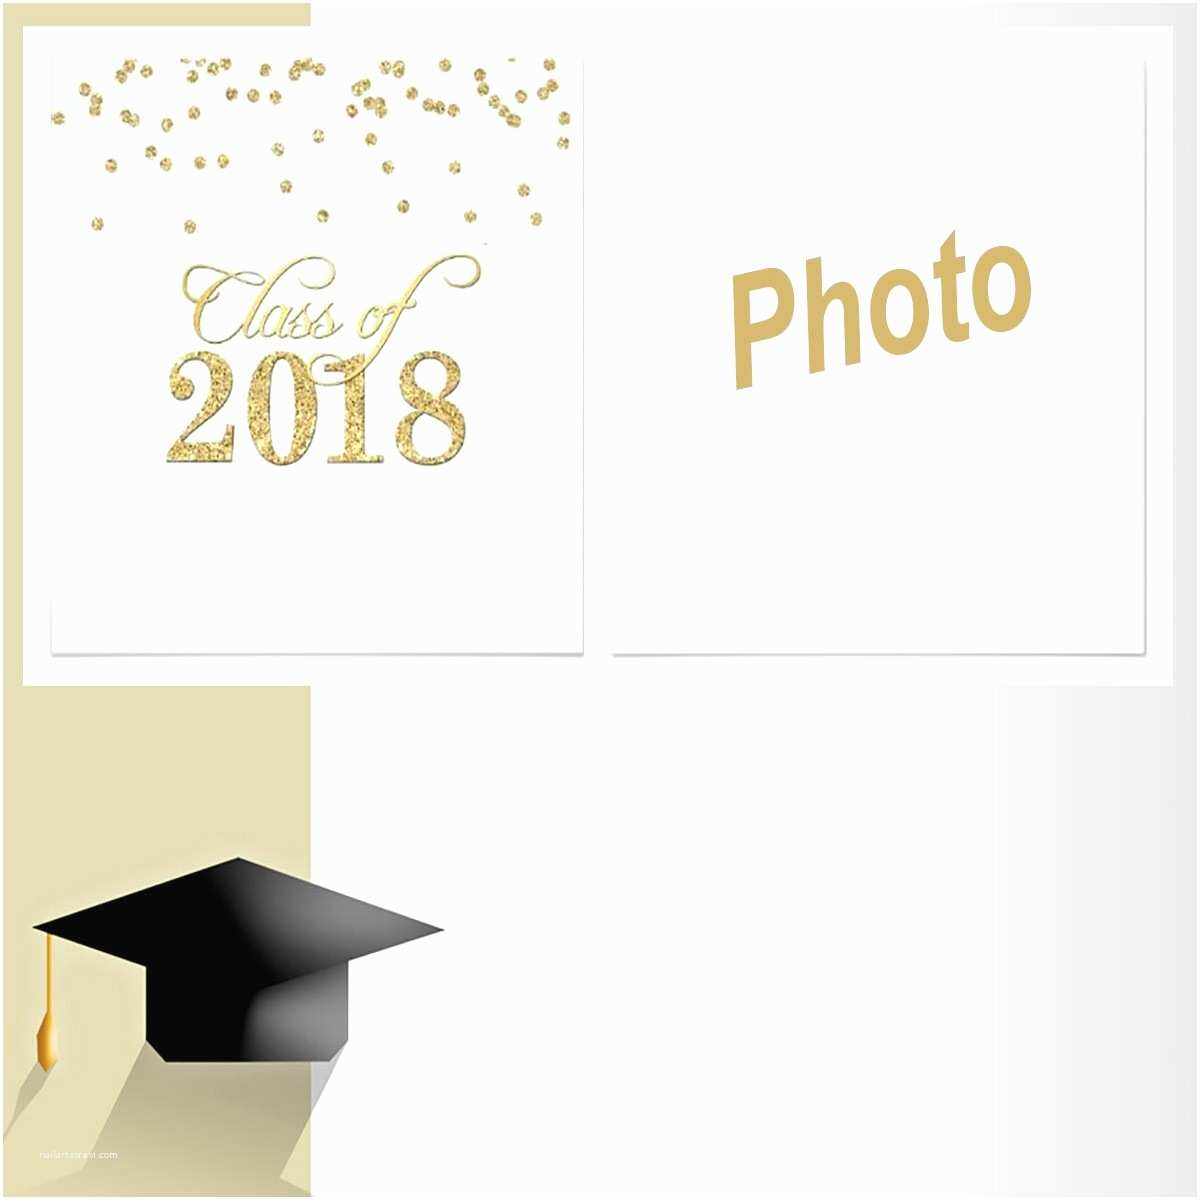 image regarding Printable Graduation Announcements named Commencement Invites 2018 Cost-free Printable Commencement